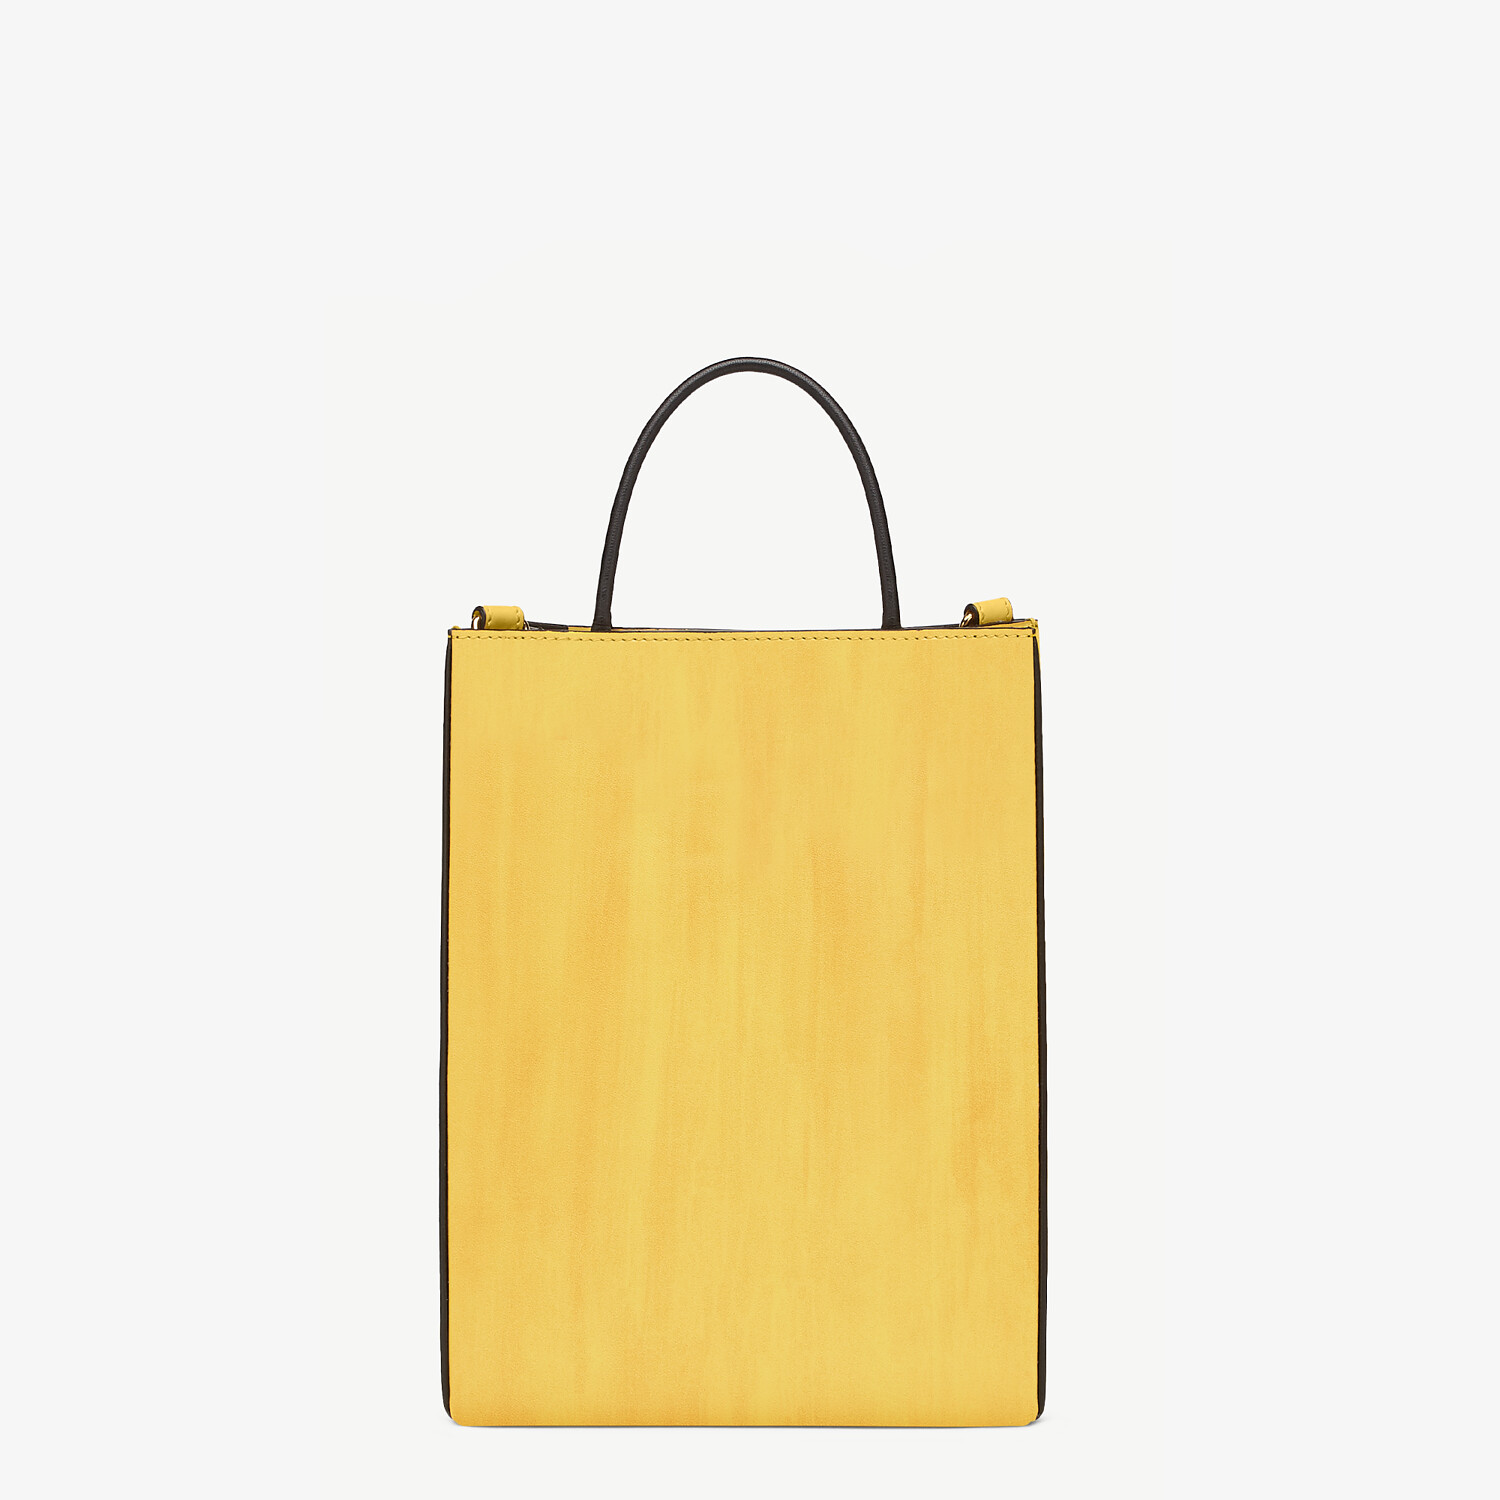 FENDI FENDI PACK SMALL SHOPPING BAG - Yellow leather bag - view 3 detail